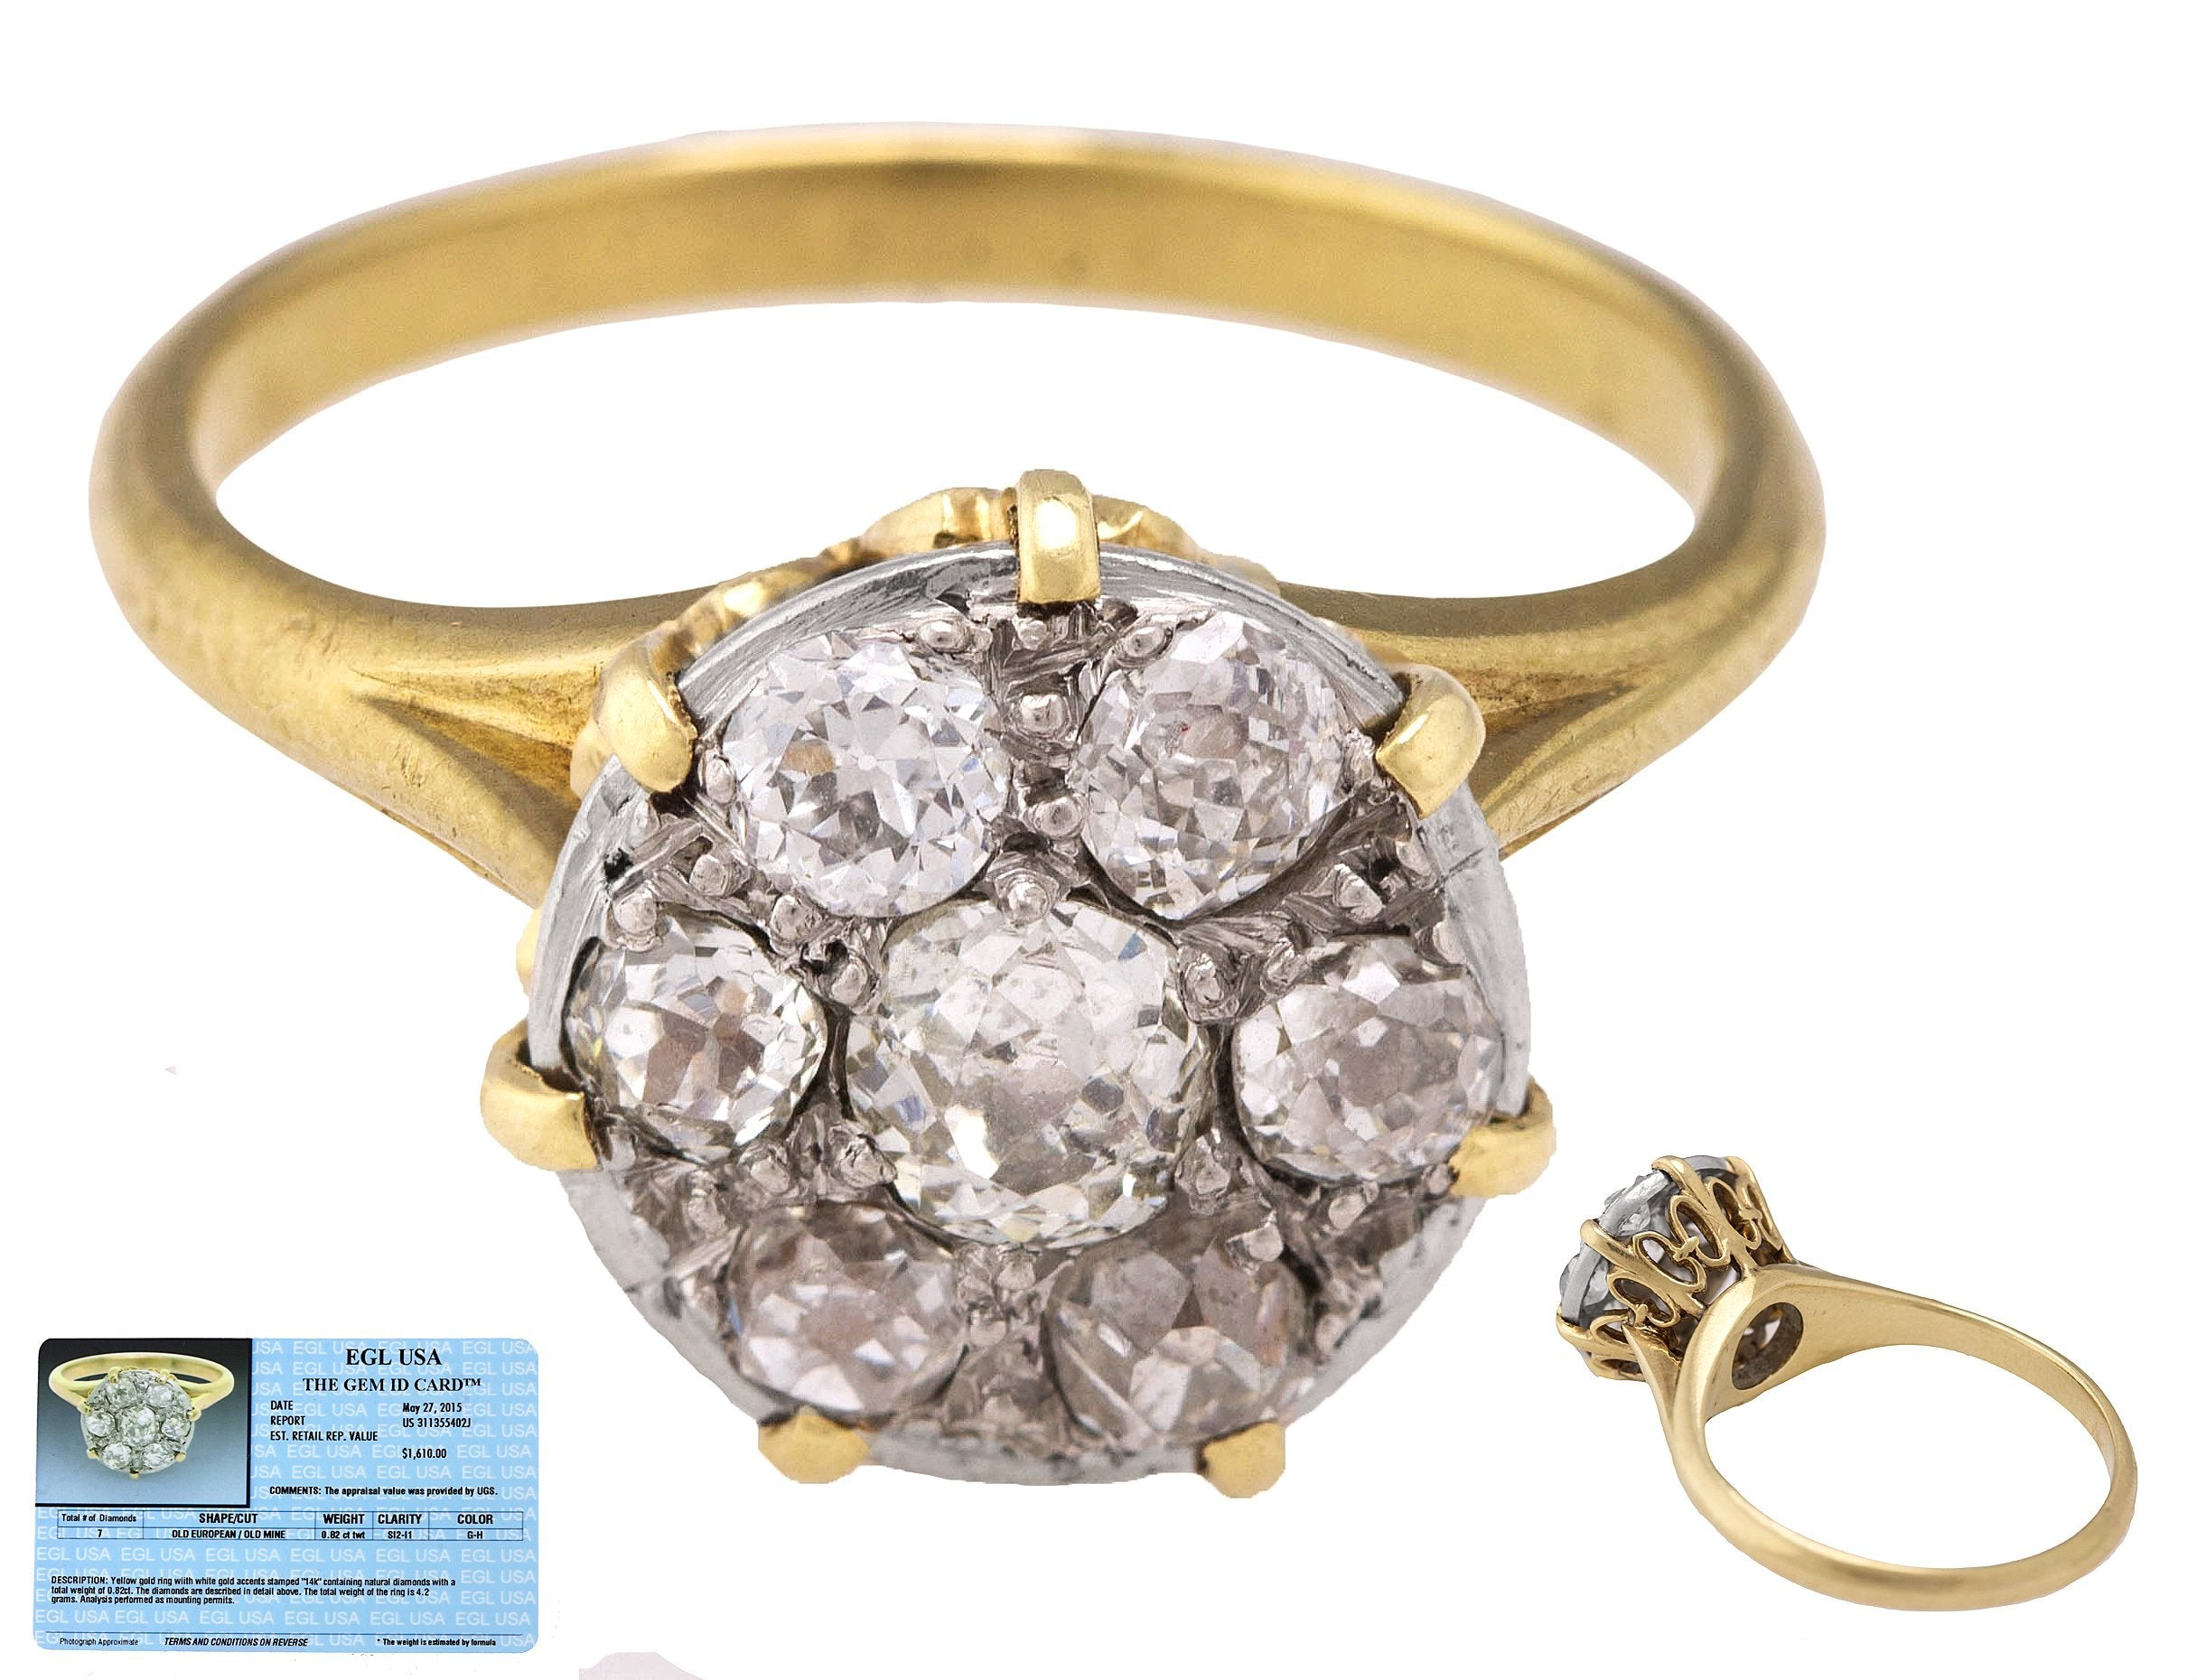 Vintage Art Deco 14K Yellow Gold 0.82ctw G-H SI2-I1 Diamond Cluster Ring EGL USA